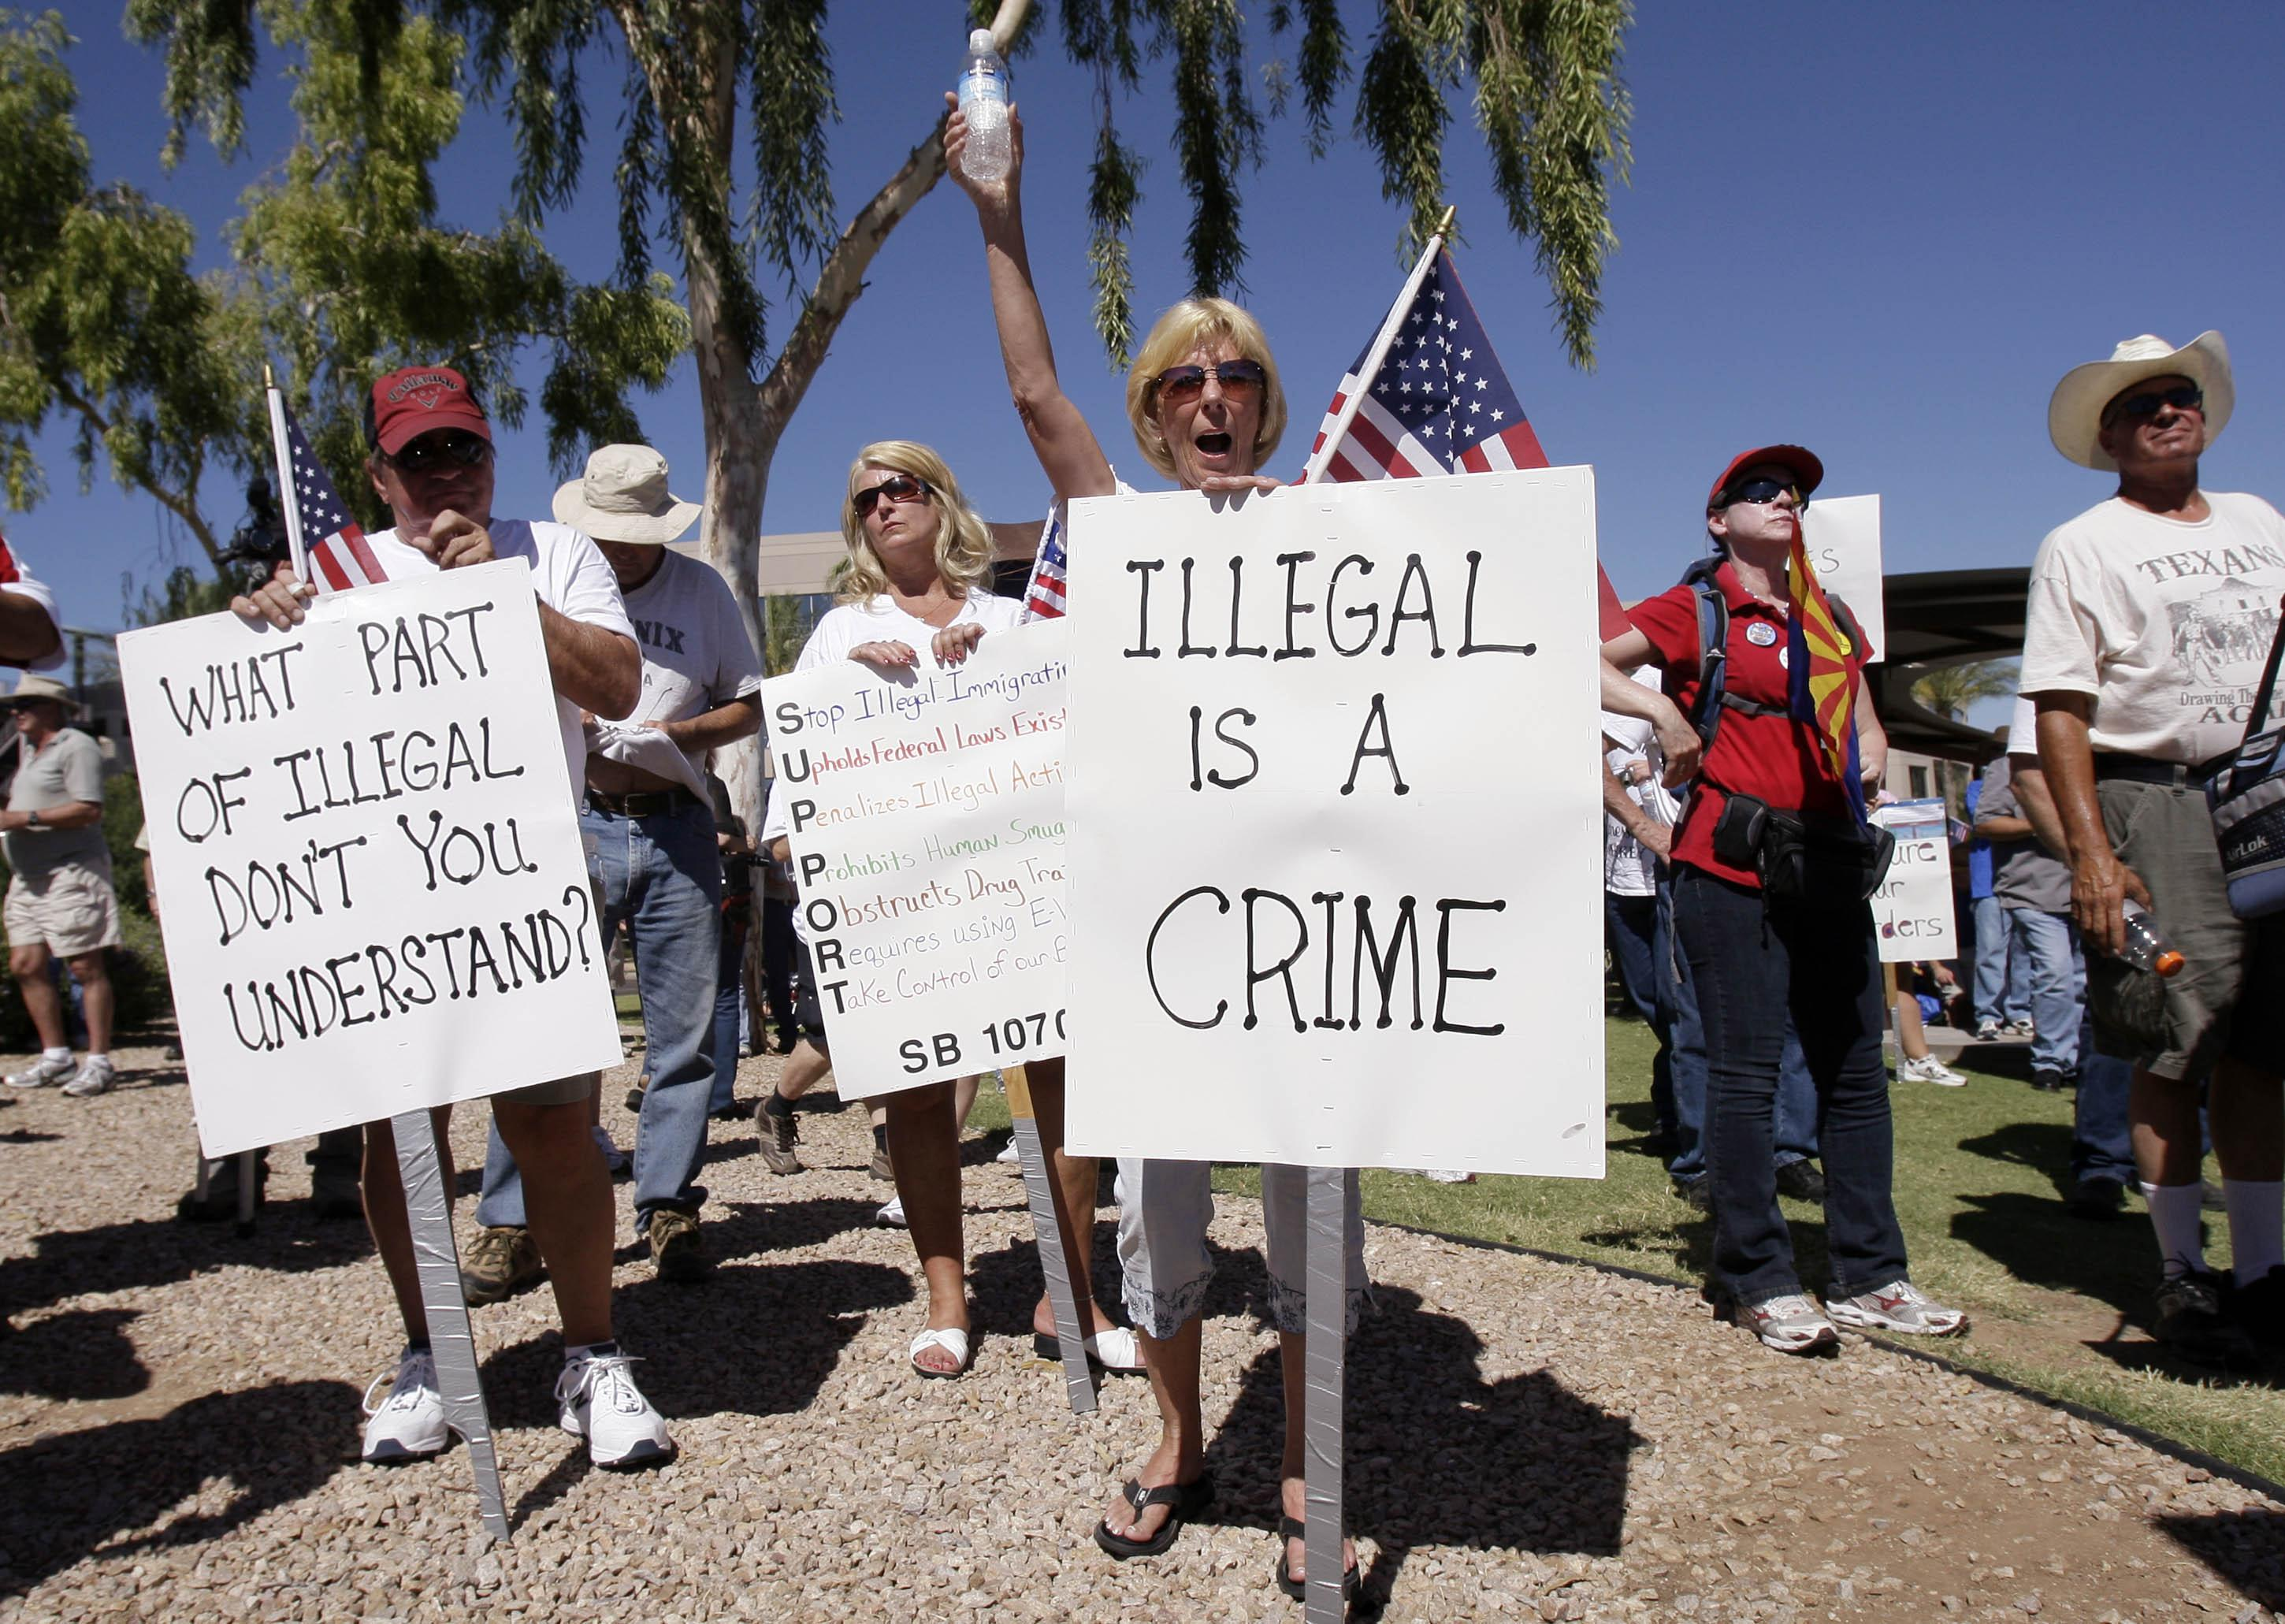 Image: Protest in Glendale, Ariz.